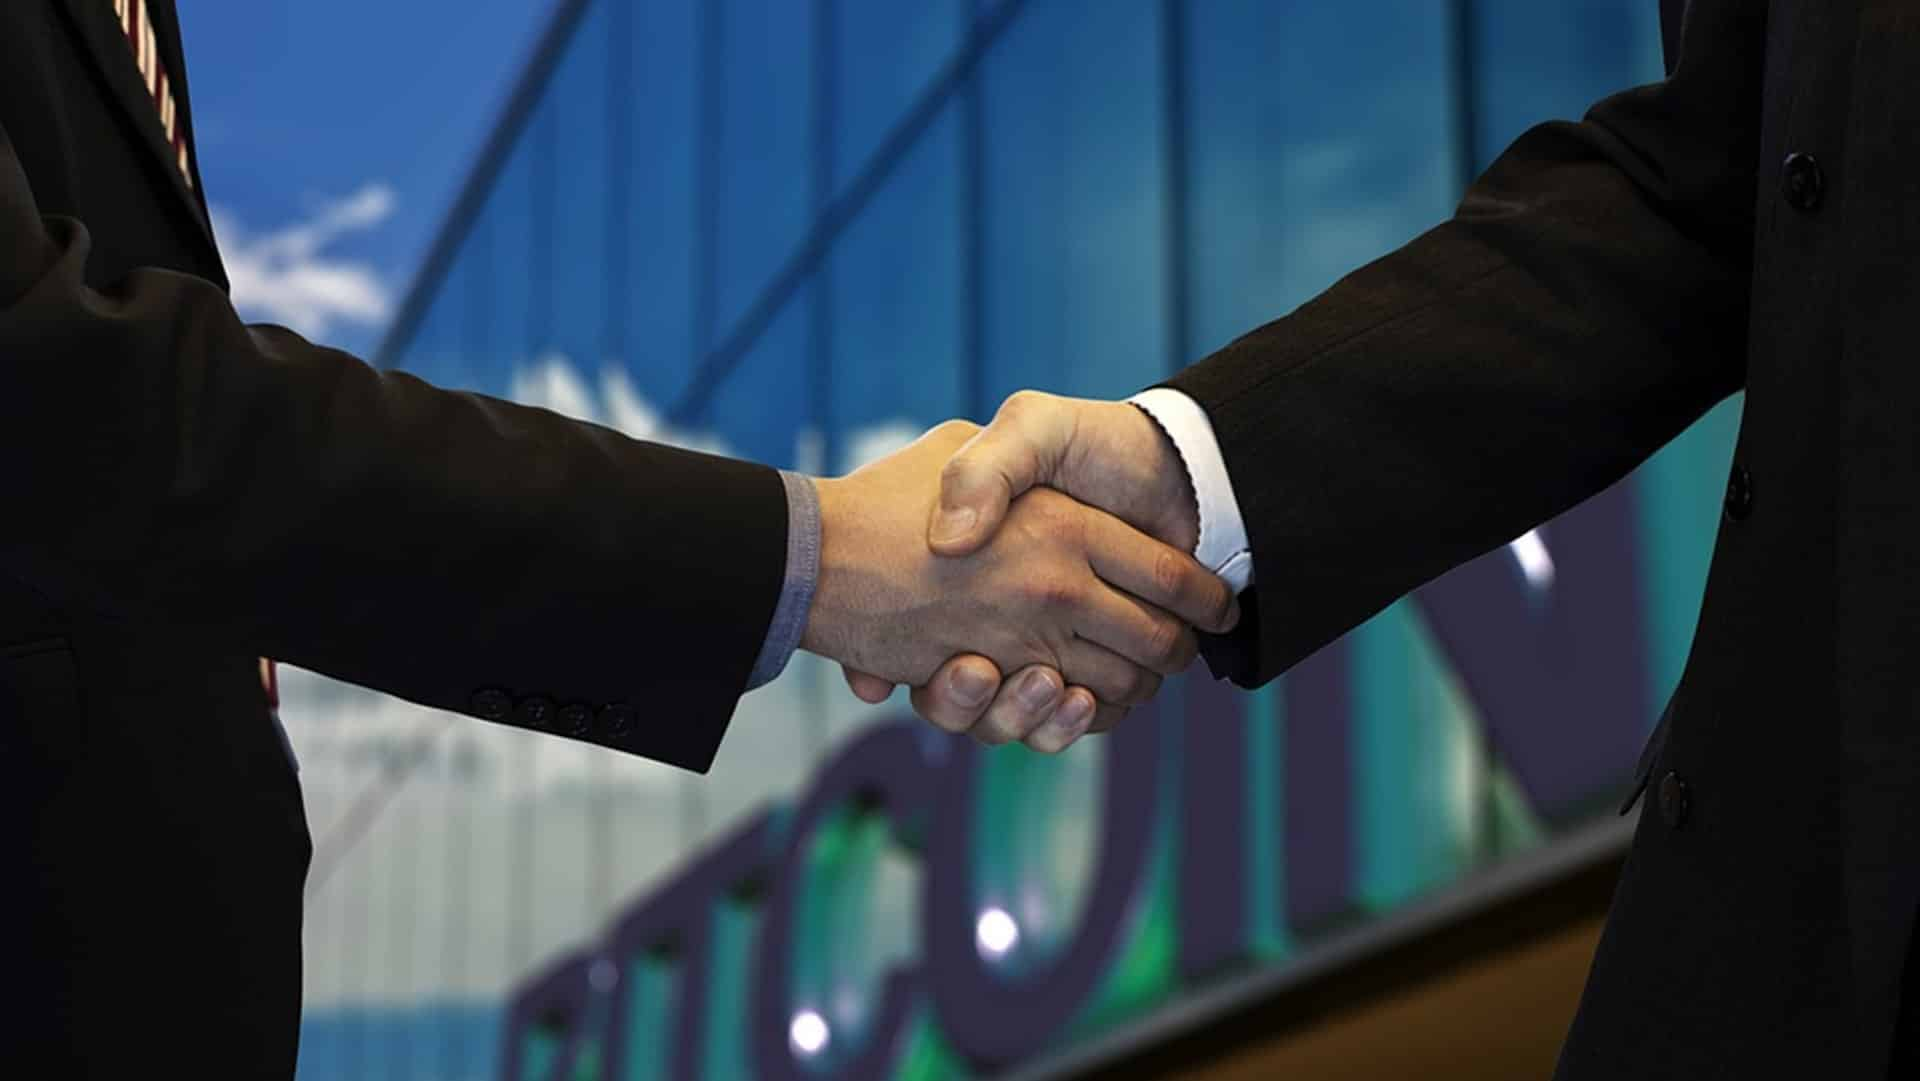 India Inc sees 219 deals in August worth $ 8.4 bn: Report